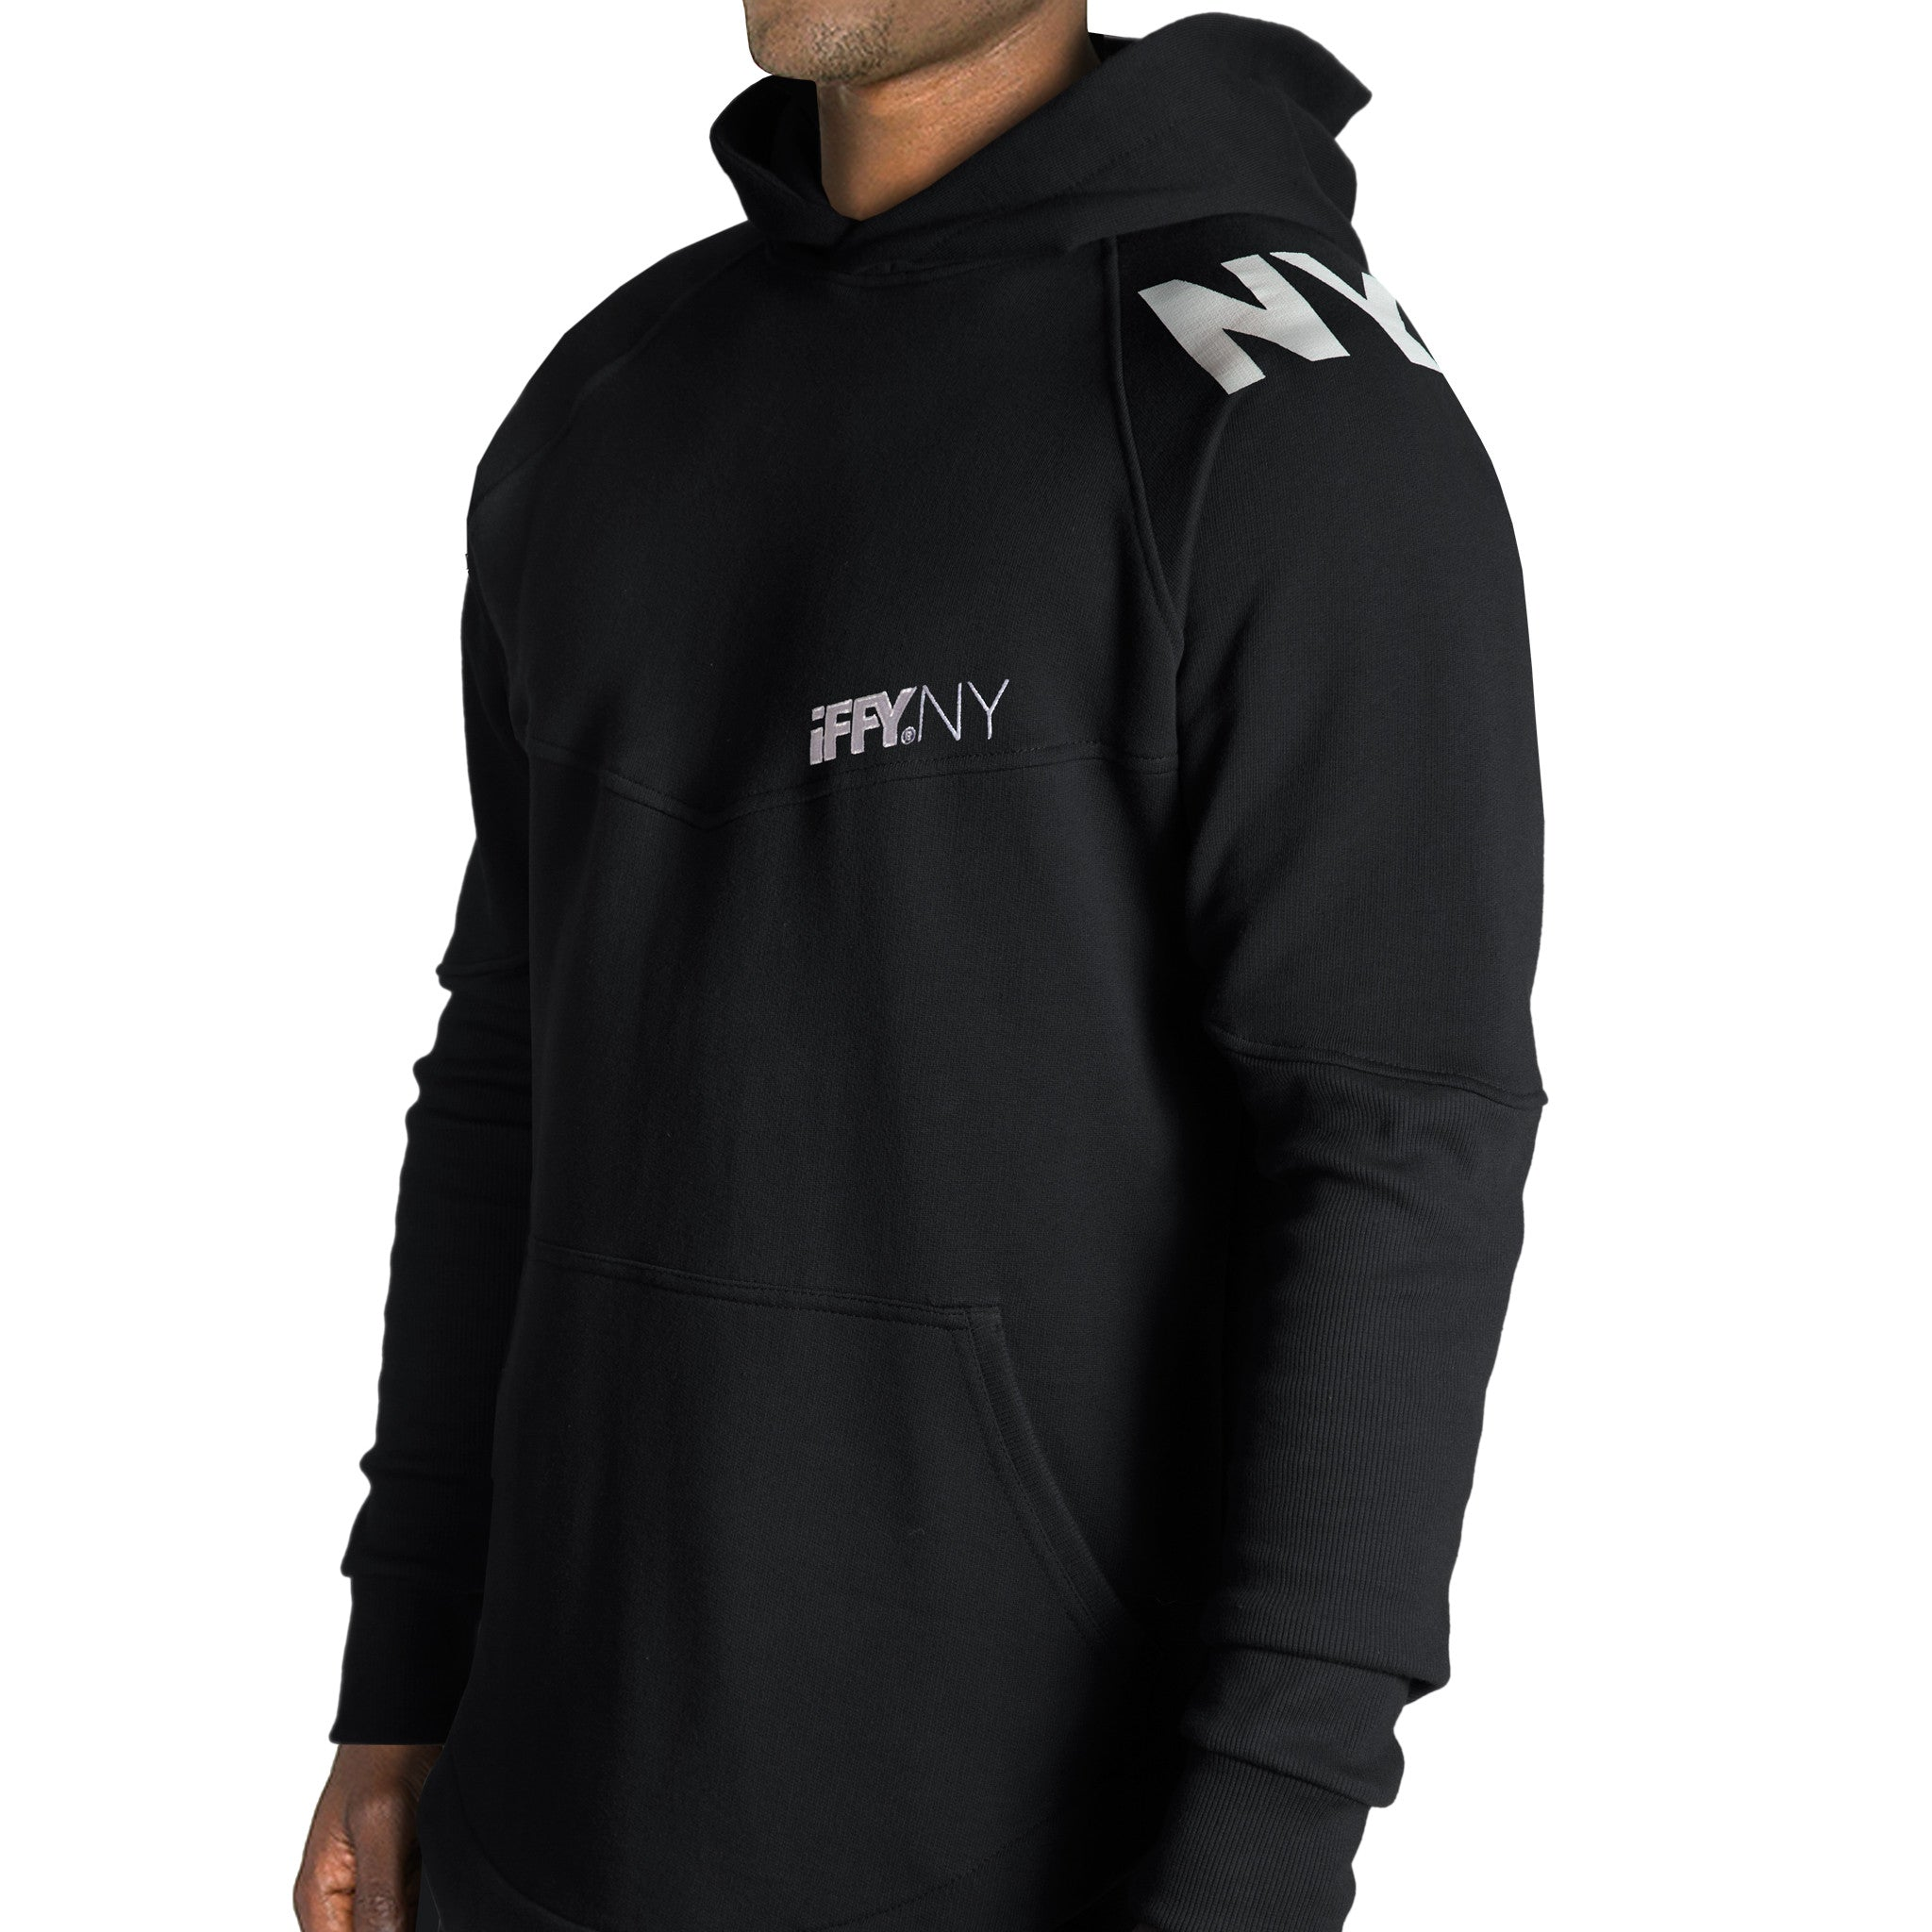 IFFY NY Hunter hoodie in black